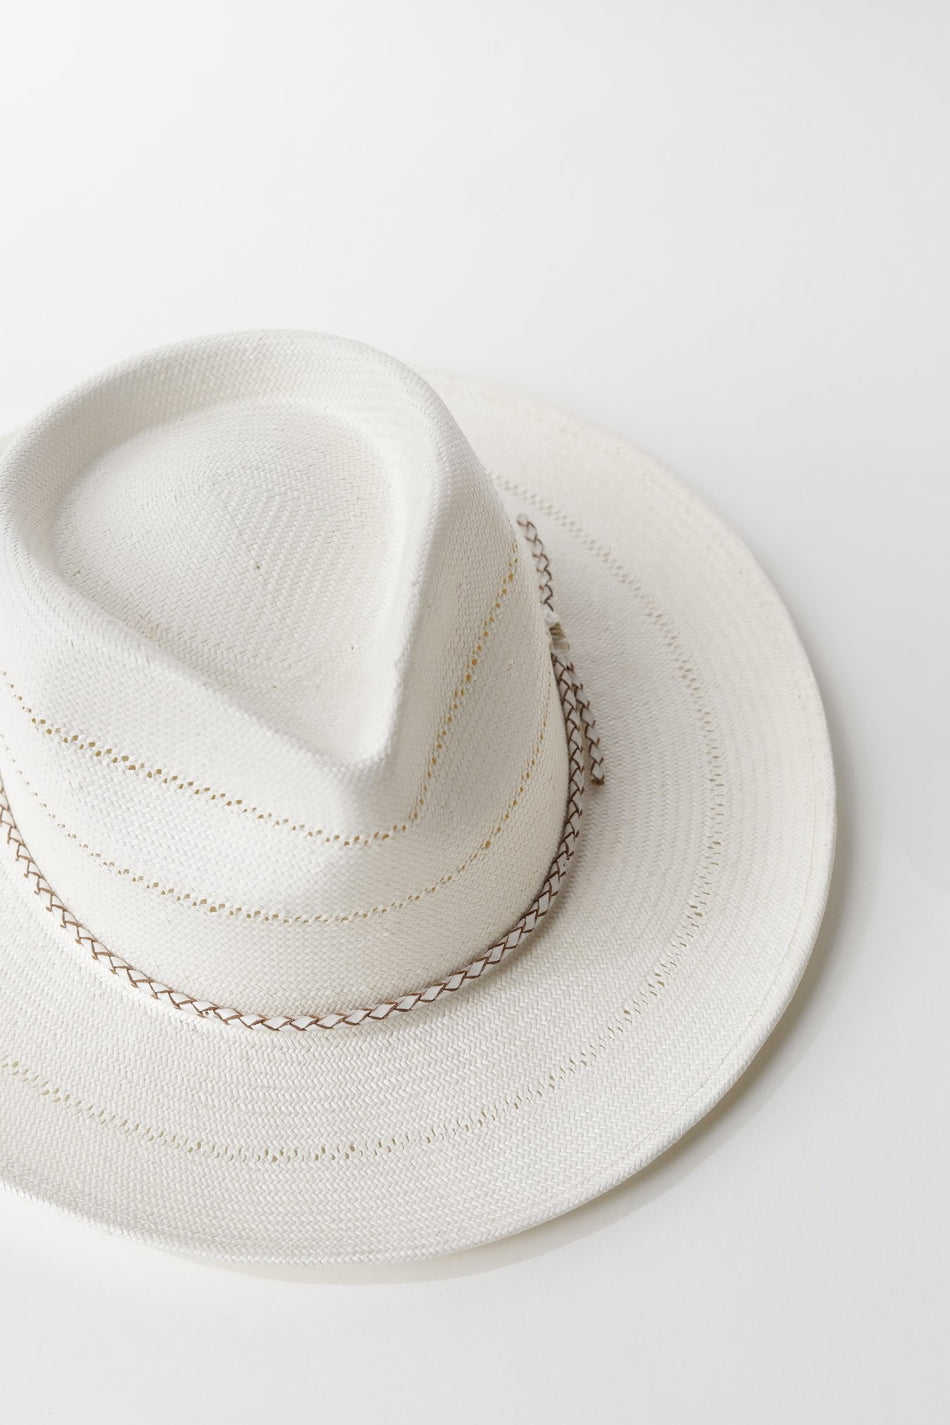 Venice Satin-Lined Straw Hat